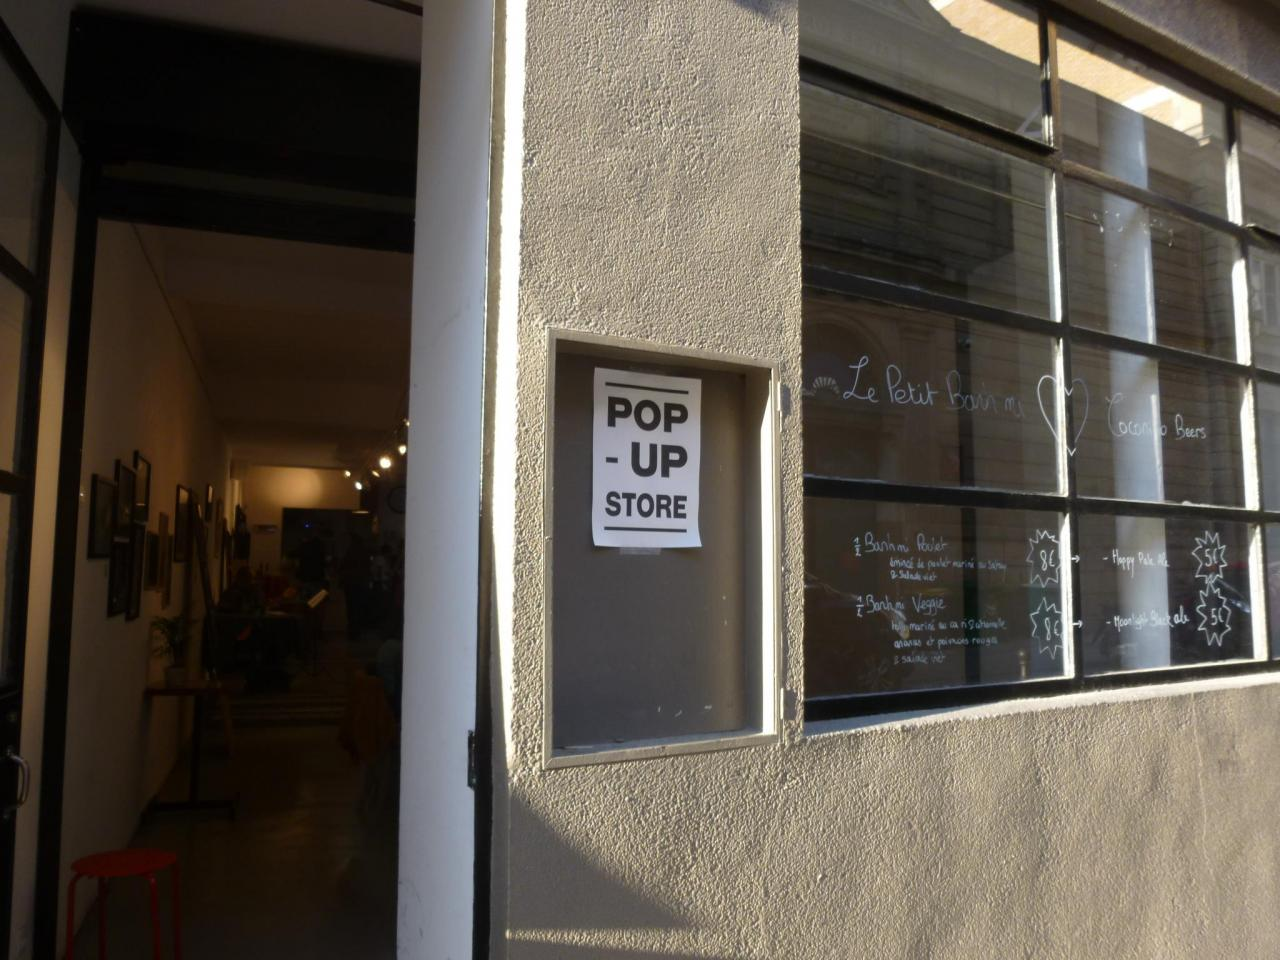 La rencontre a eu lieu au Pop Up Store